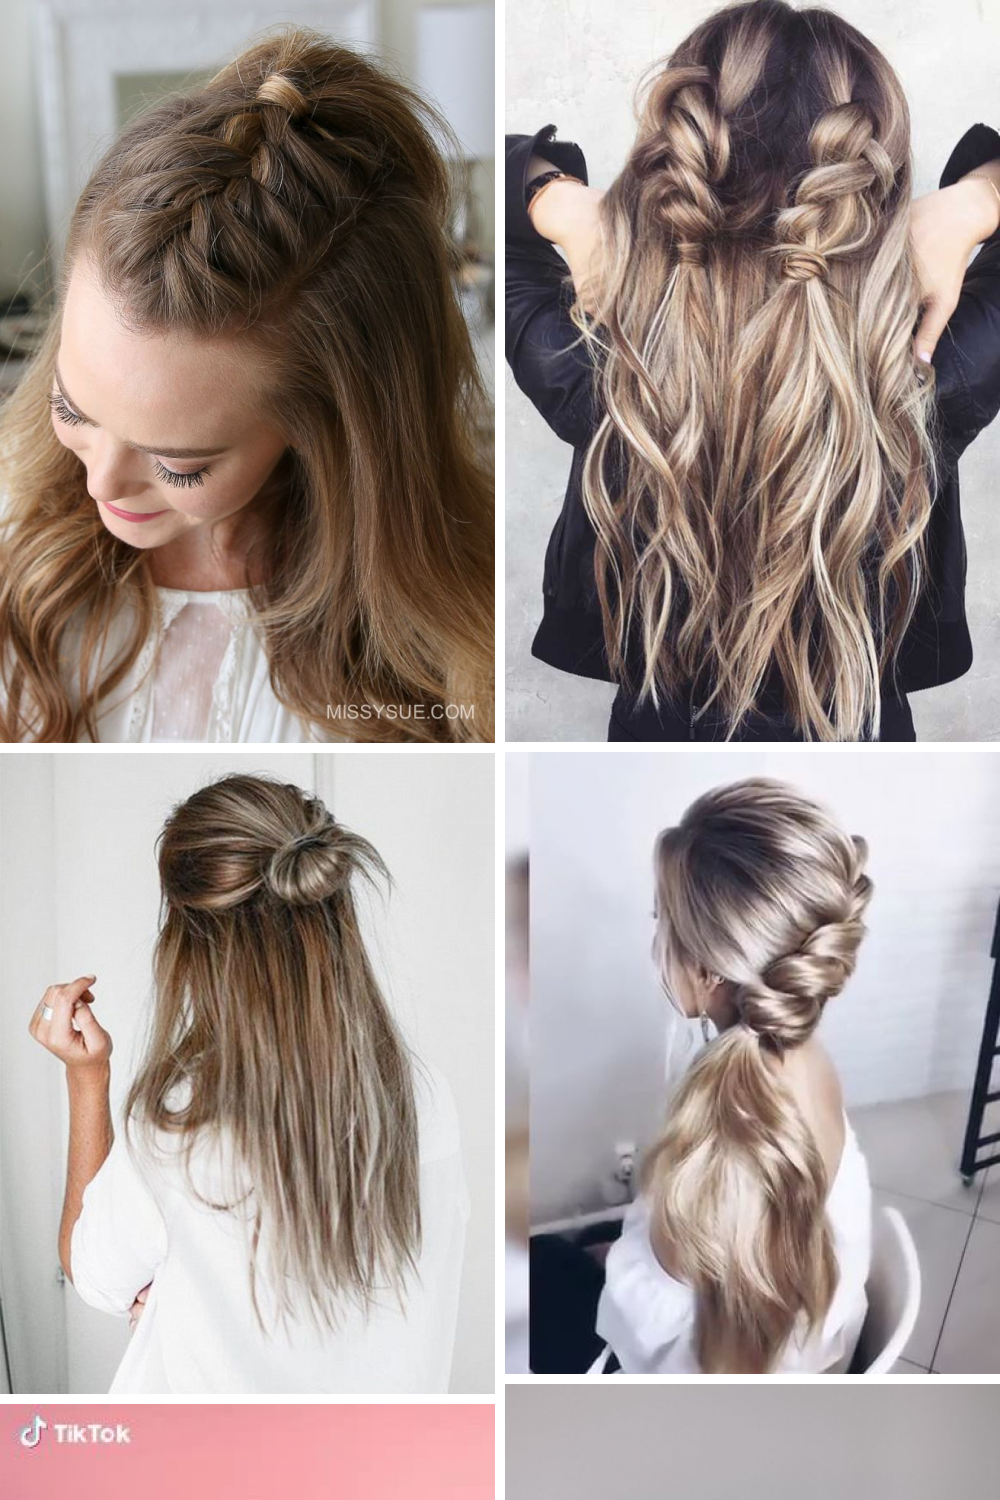 21 Modern Easy Hairstyles Ideas You Will Fall In Love Easy Hairstyles Hair Styles Easy College Hairstyles